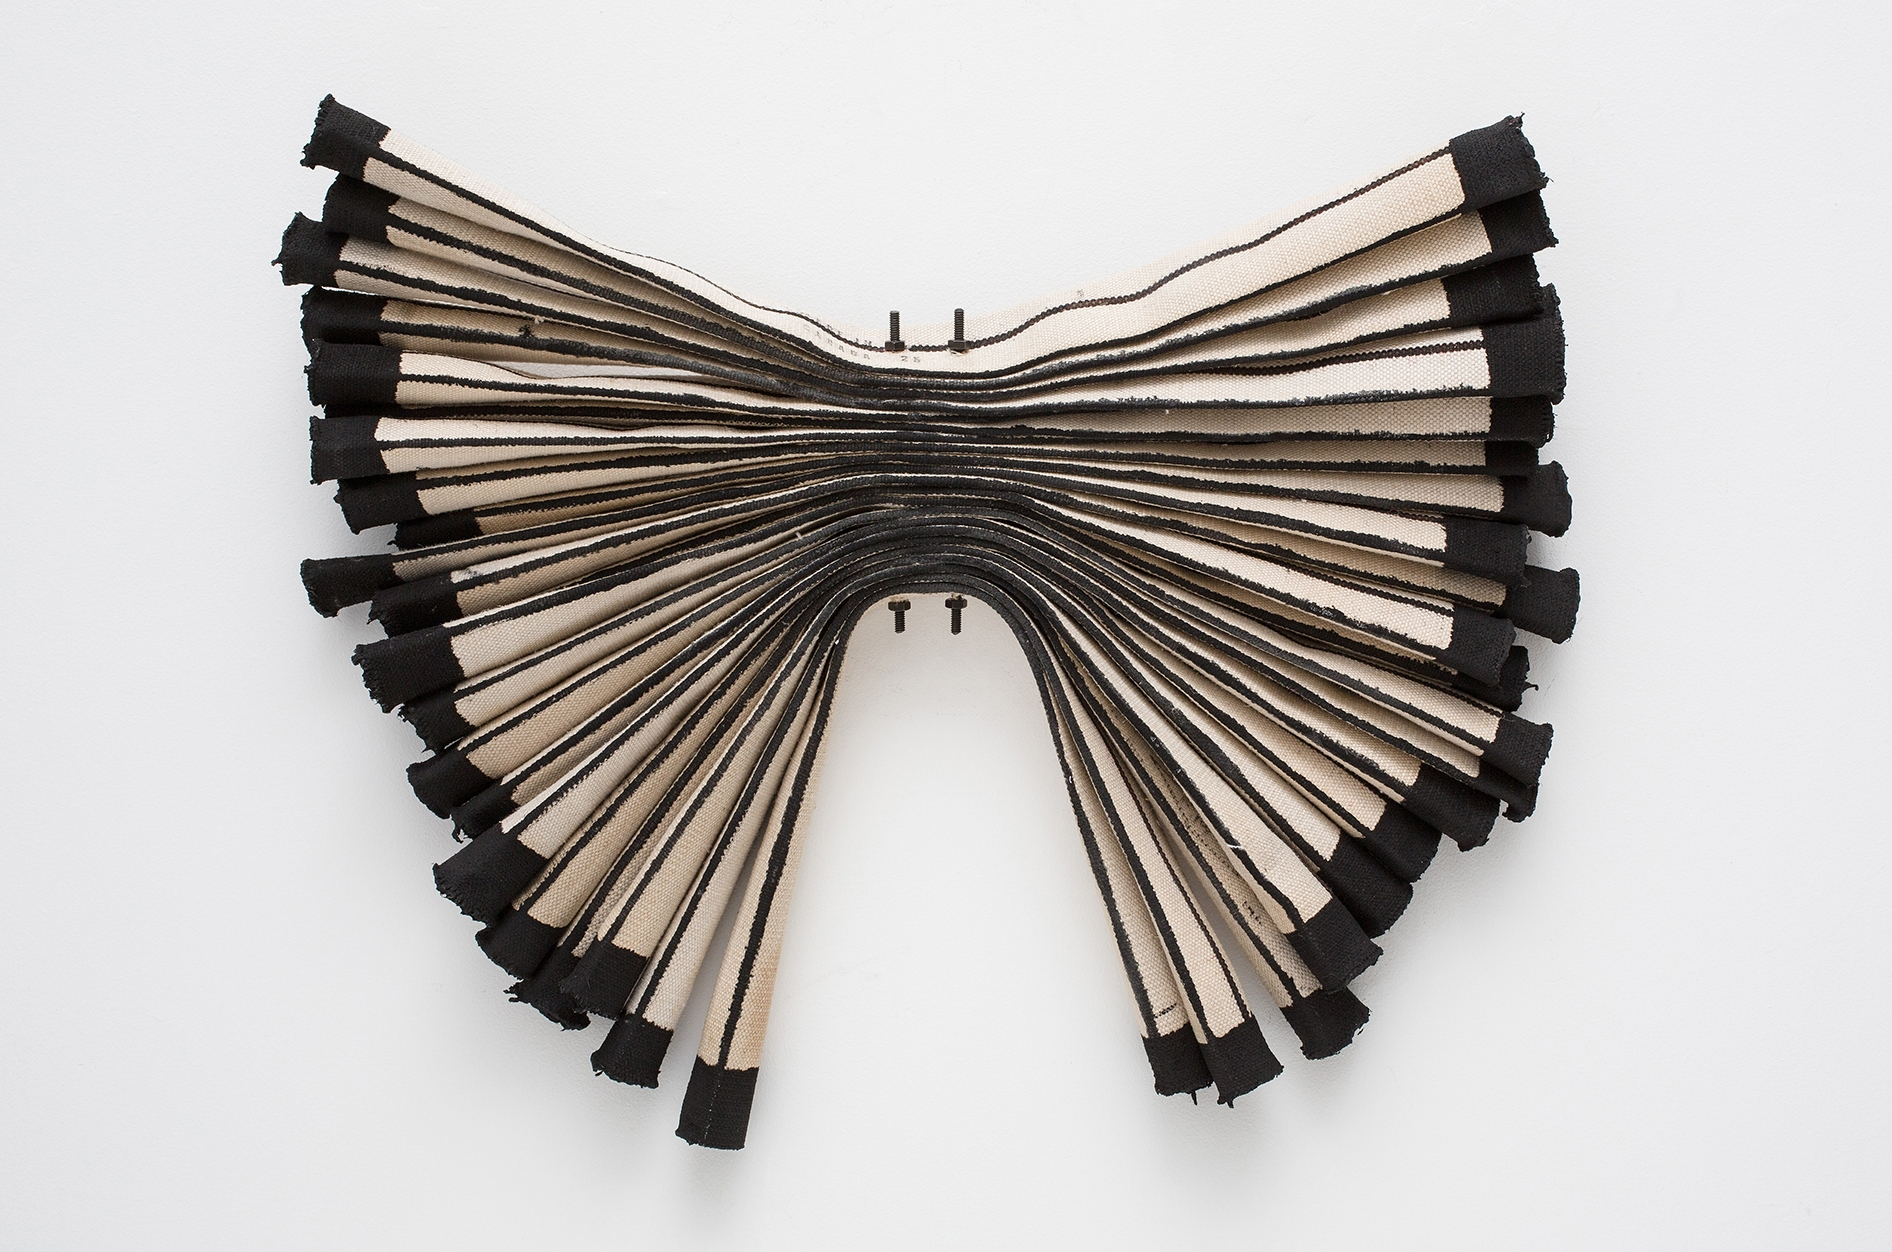 Firehose Experiment #3, 2015, Deconstructed linen firehose, paint, threaded rods, nuts, 24 x 28 x 3 inches_CaFe.jpg